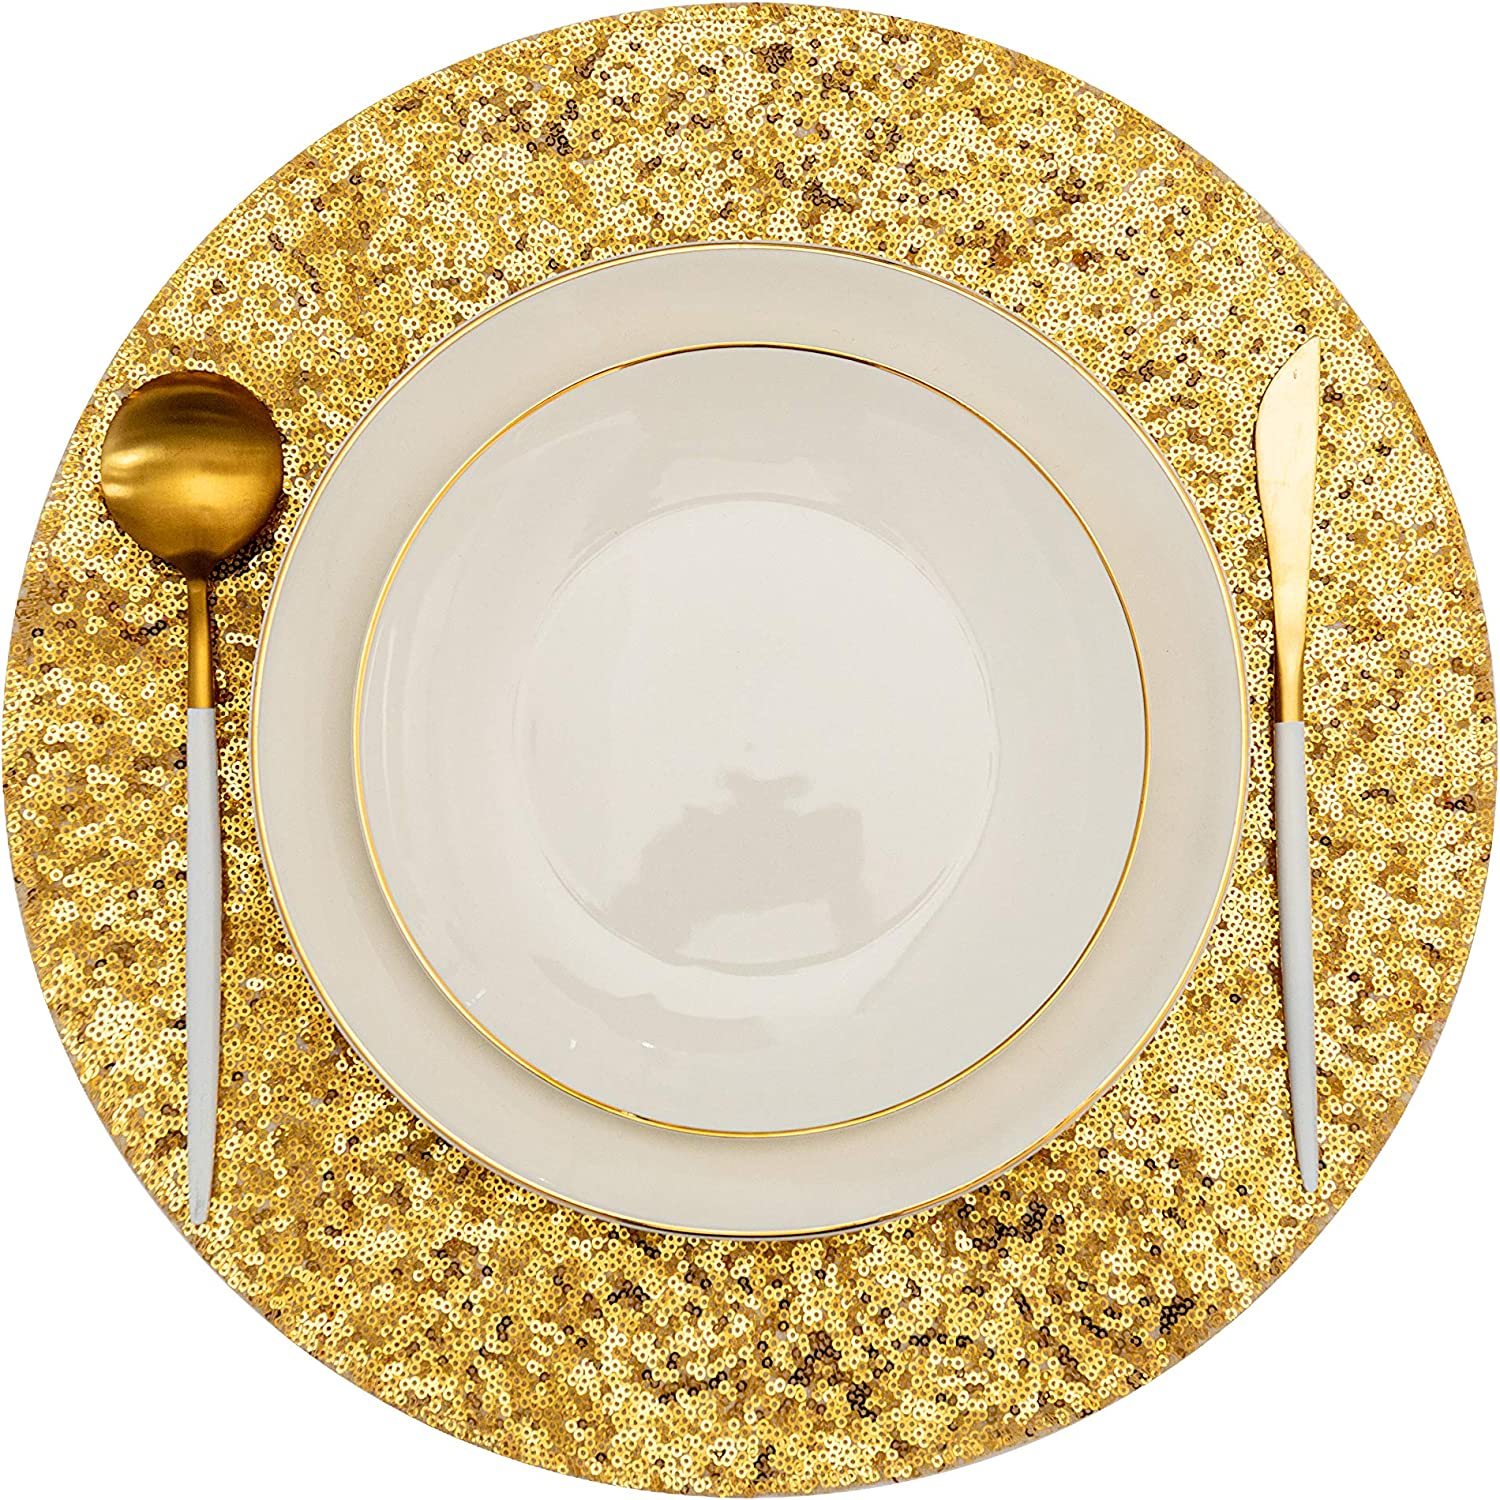 Sequin Round Placemats for Dining Table Set of 6 Gold Place Mats , Washable Glitter Placemats for Table Decor Wedding Accent Centerpiece (Gold, 6)